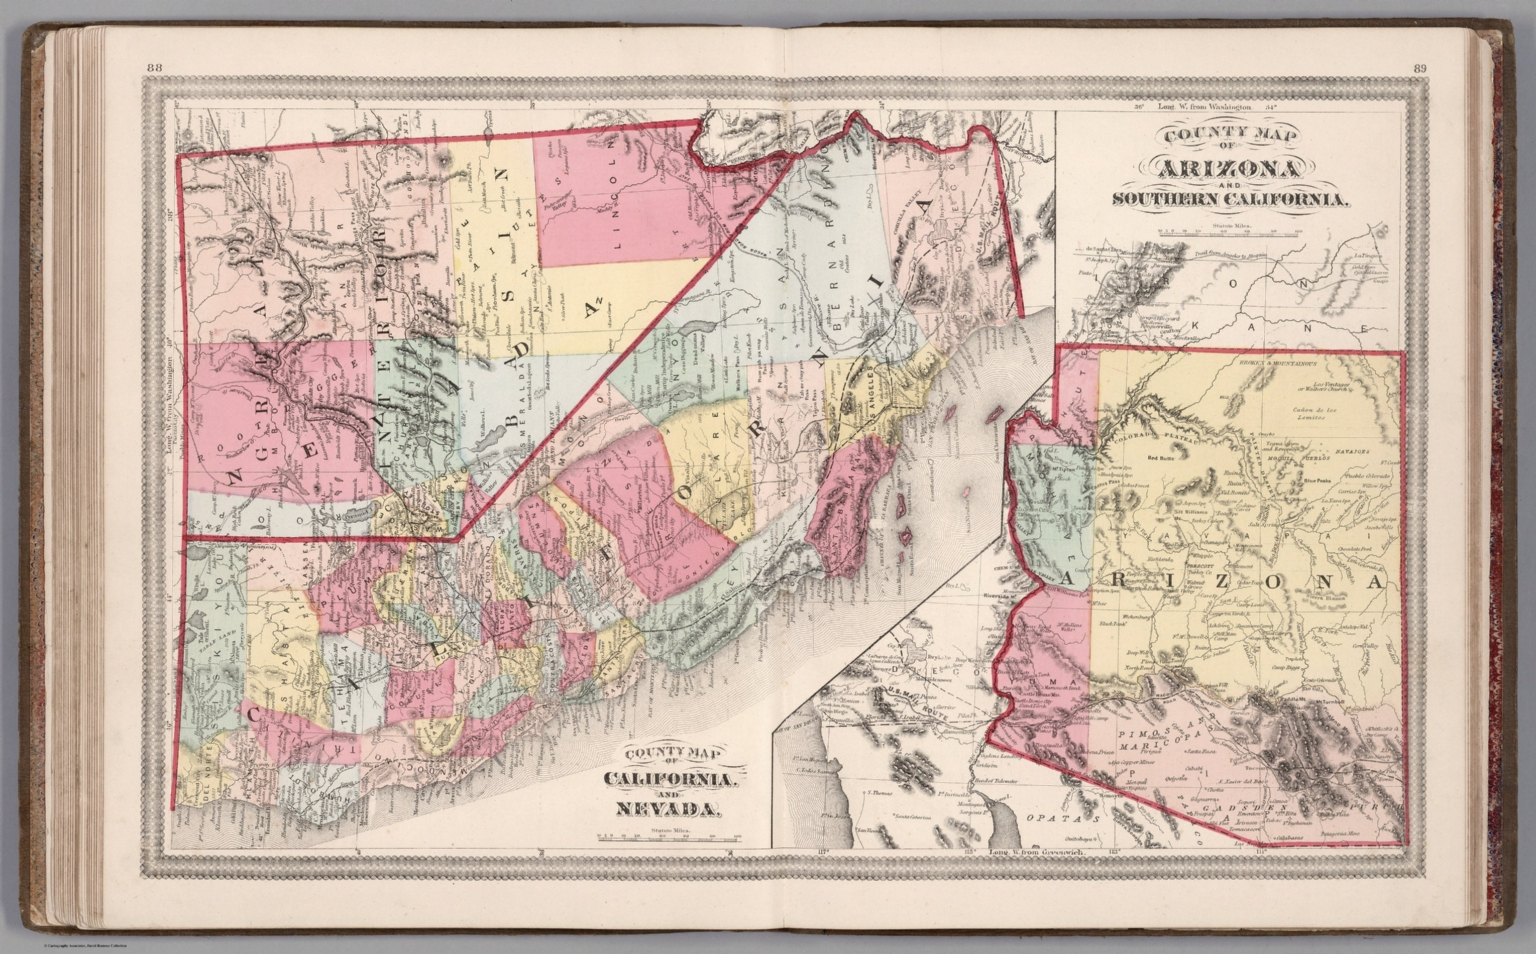 County Map Of California And Nevada County Map Of Arizona And